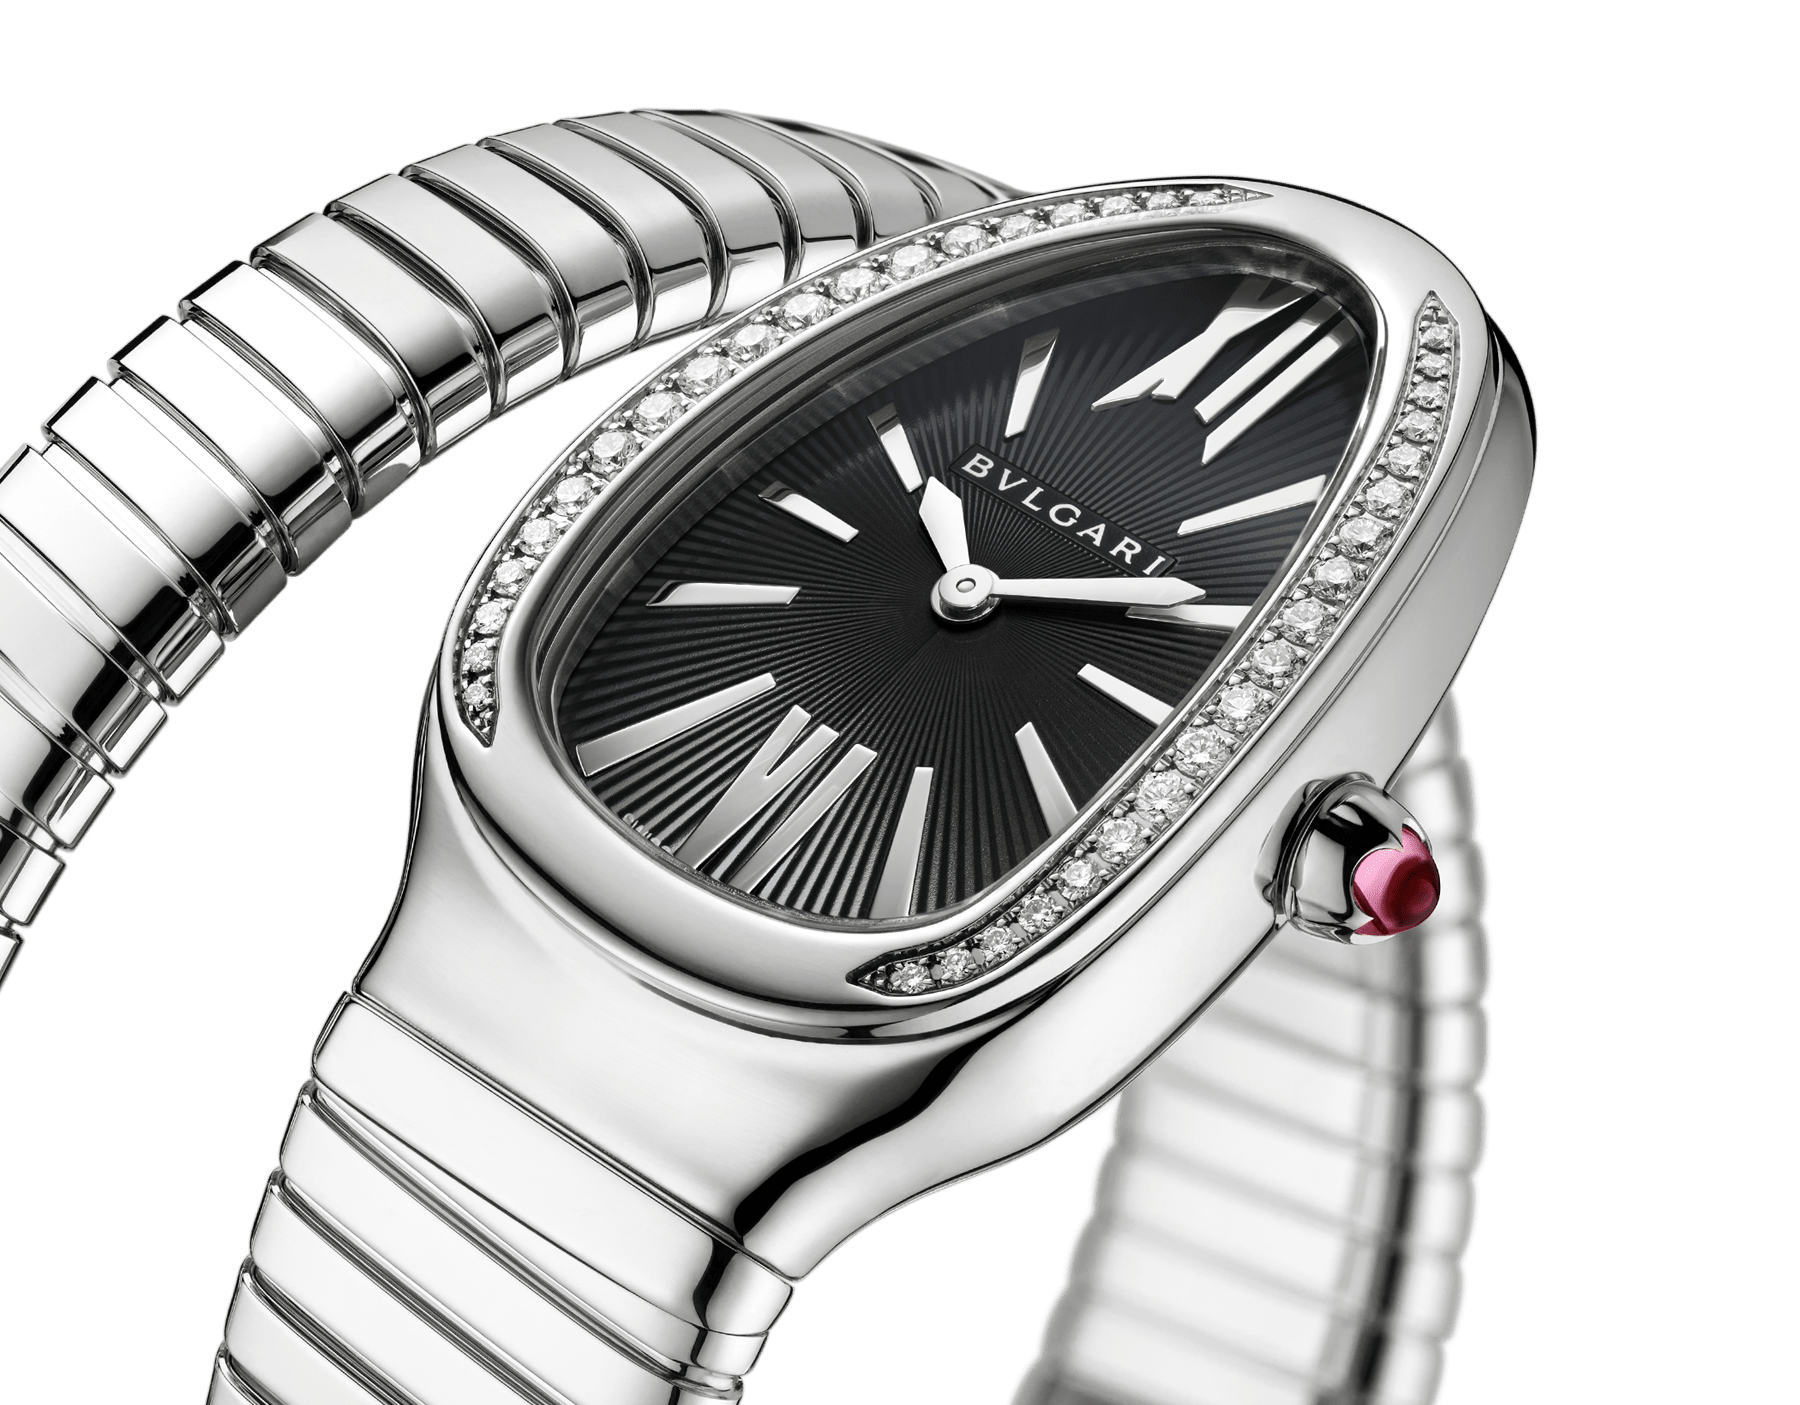 Serpenti Tubogas single spiral watch with stainless steel case and bracelet, bezel set with brilliant-cut diamonds and black dial with guilloché soleil treatment. Water-resistant up to 30 metres. Large size 103434 image 2